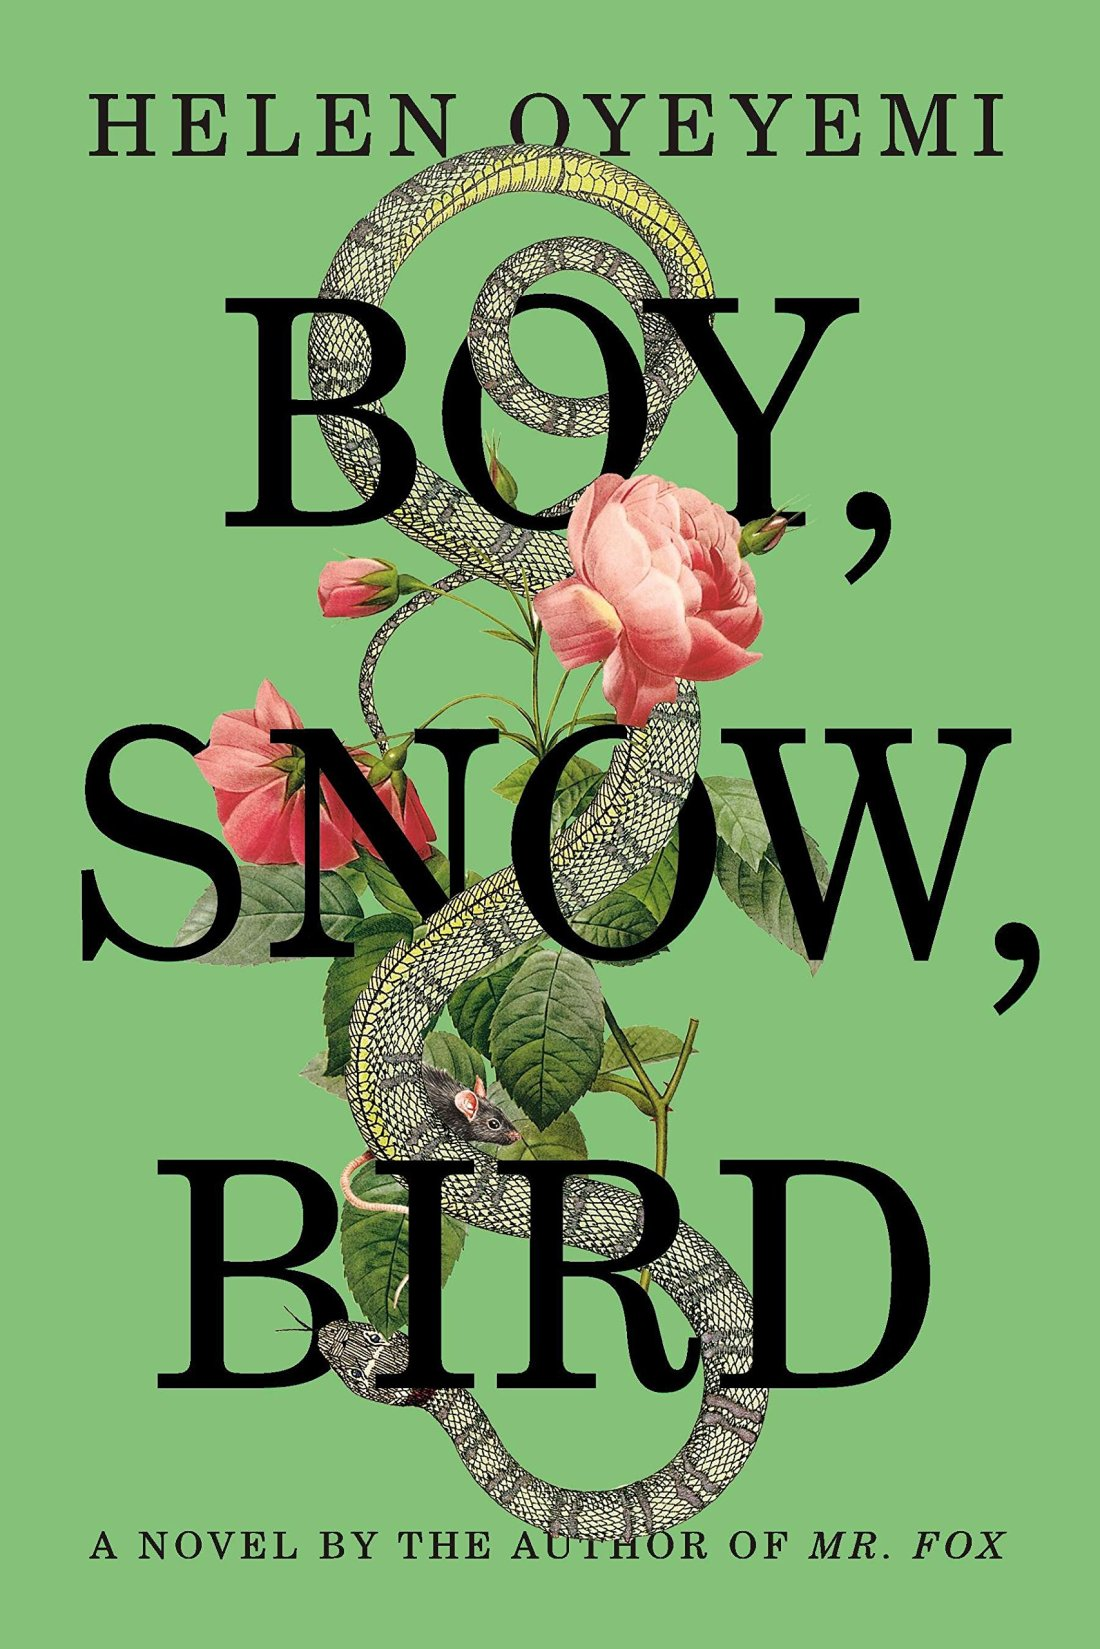 Amazon.com: Boy, Snow, Bird: A Novel (9781594631399): Oyeyemi, Helen: Books